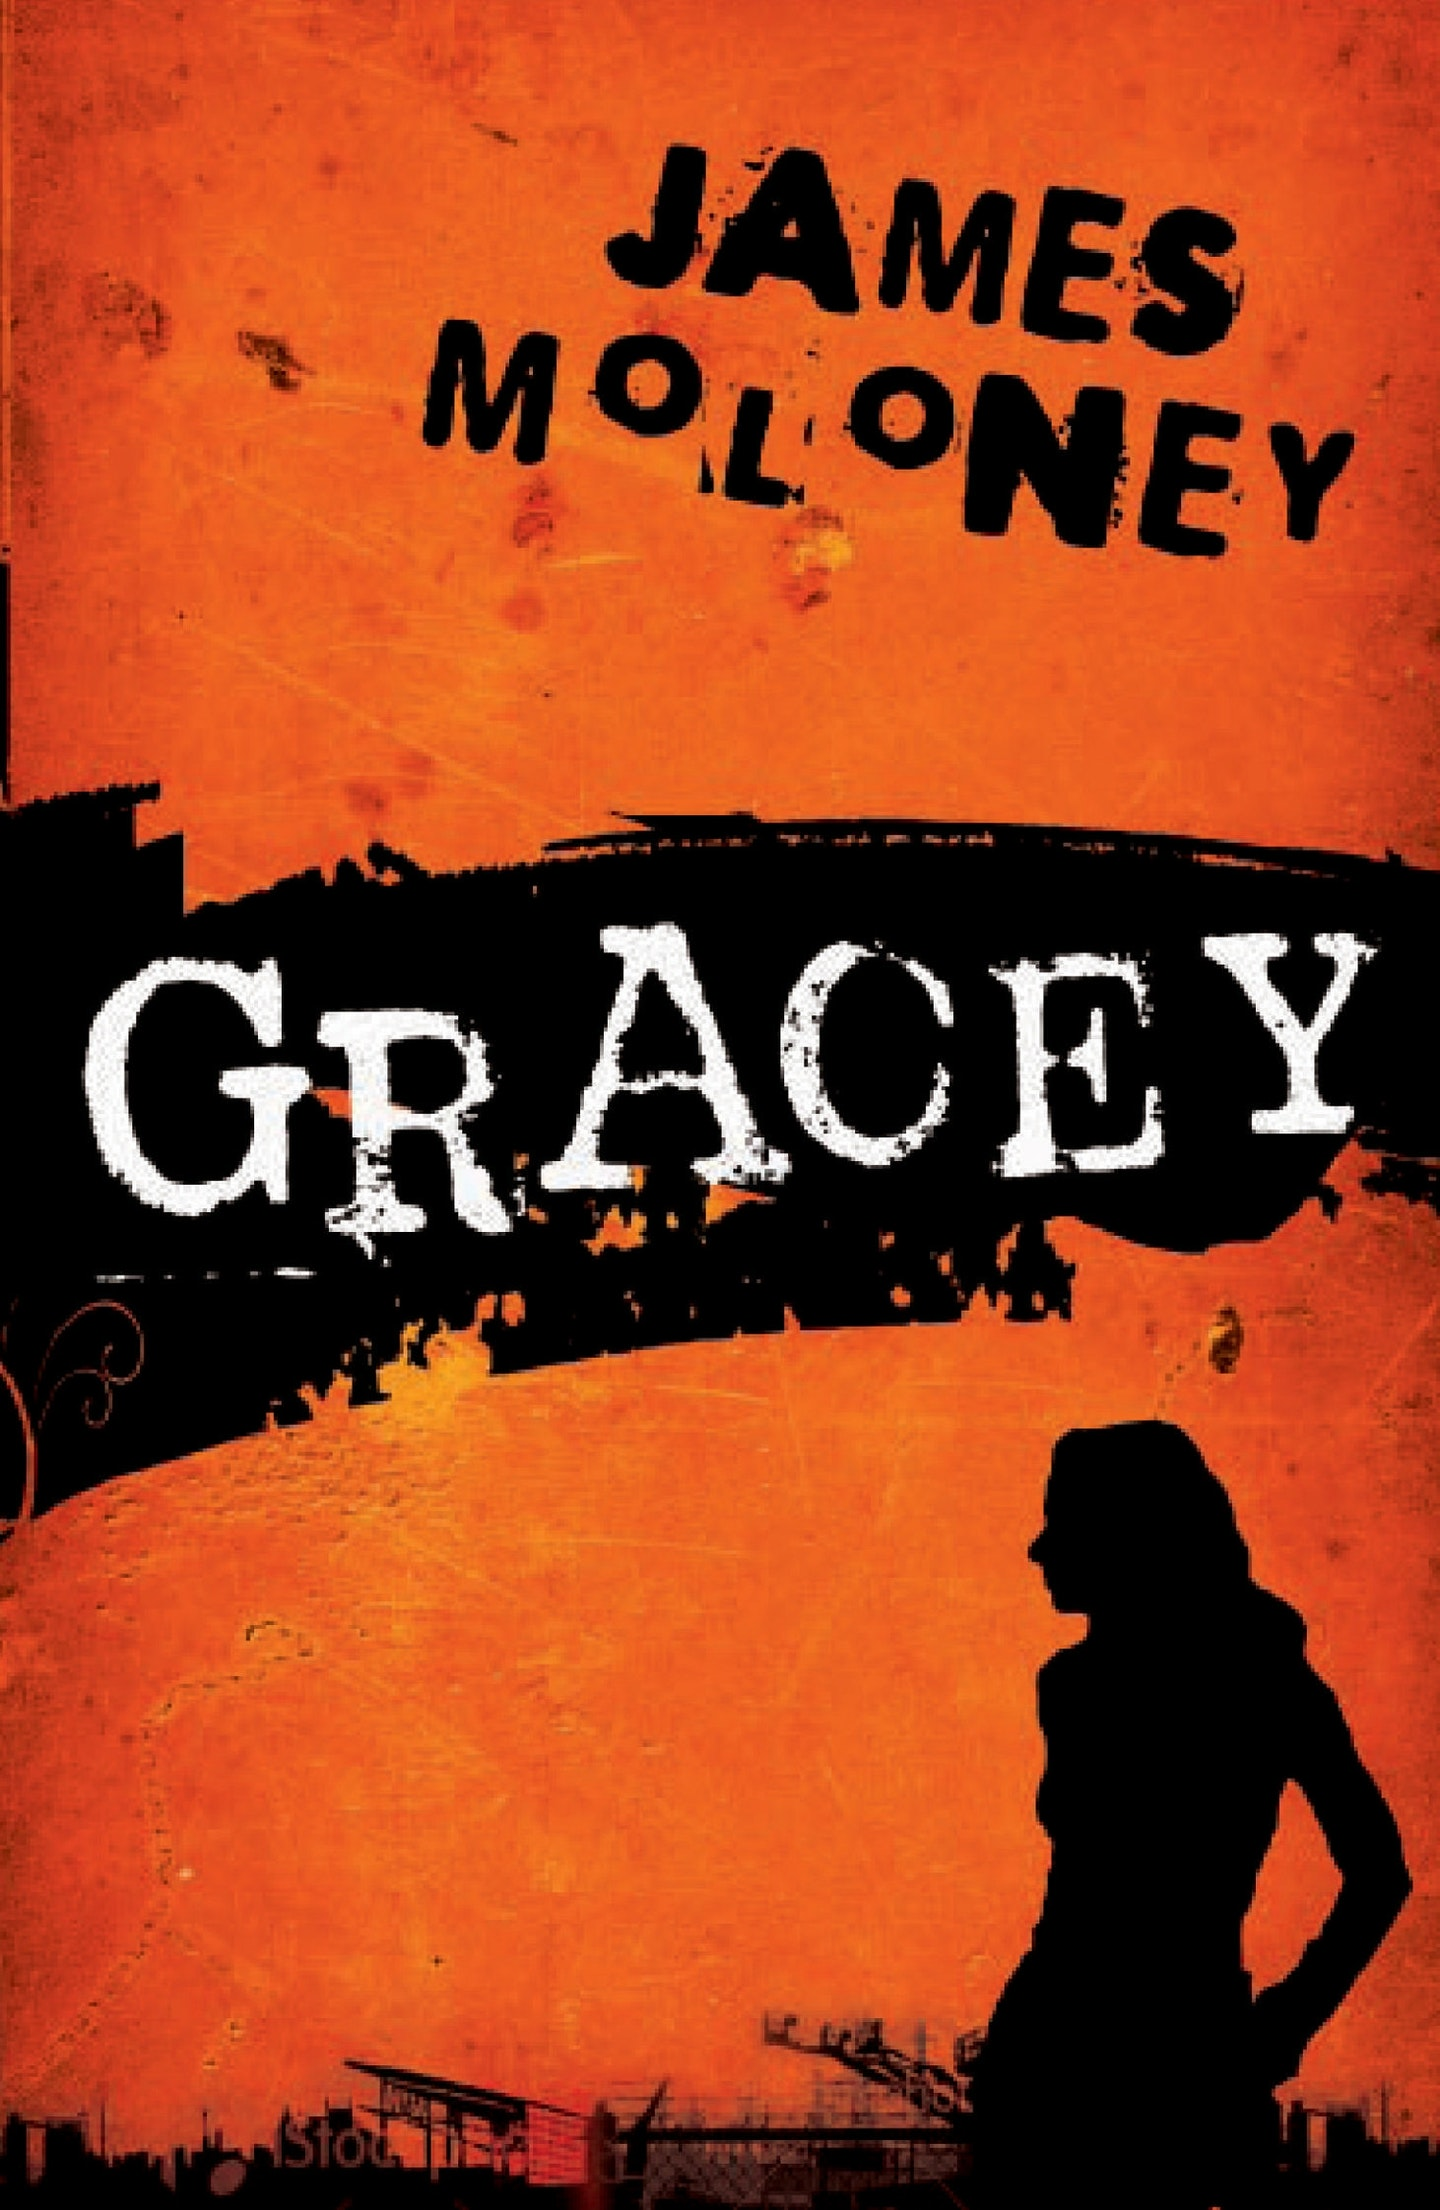 james moloney gracy Doungy by james moloney on the exterior it seems that dougy, the book, is all about racism however when you delve gracey has first training session.